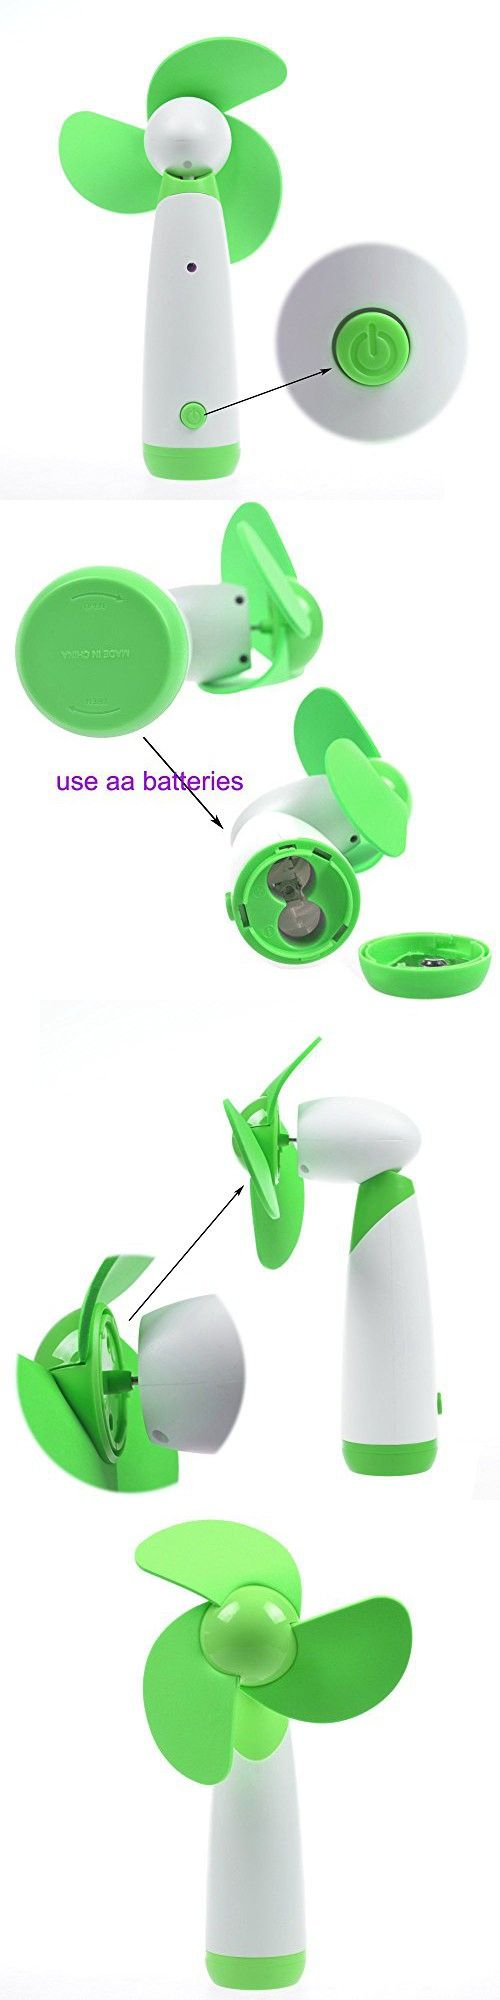 Ellami®2Pcs green Personal Hand-held/Portable Battery Operated Mini Air Fan for Home and Travel